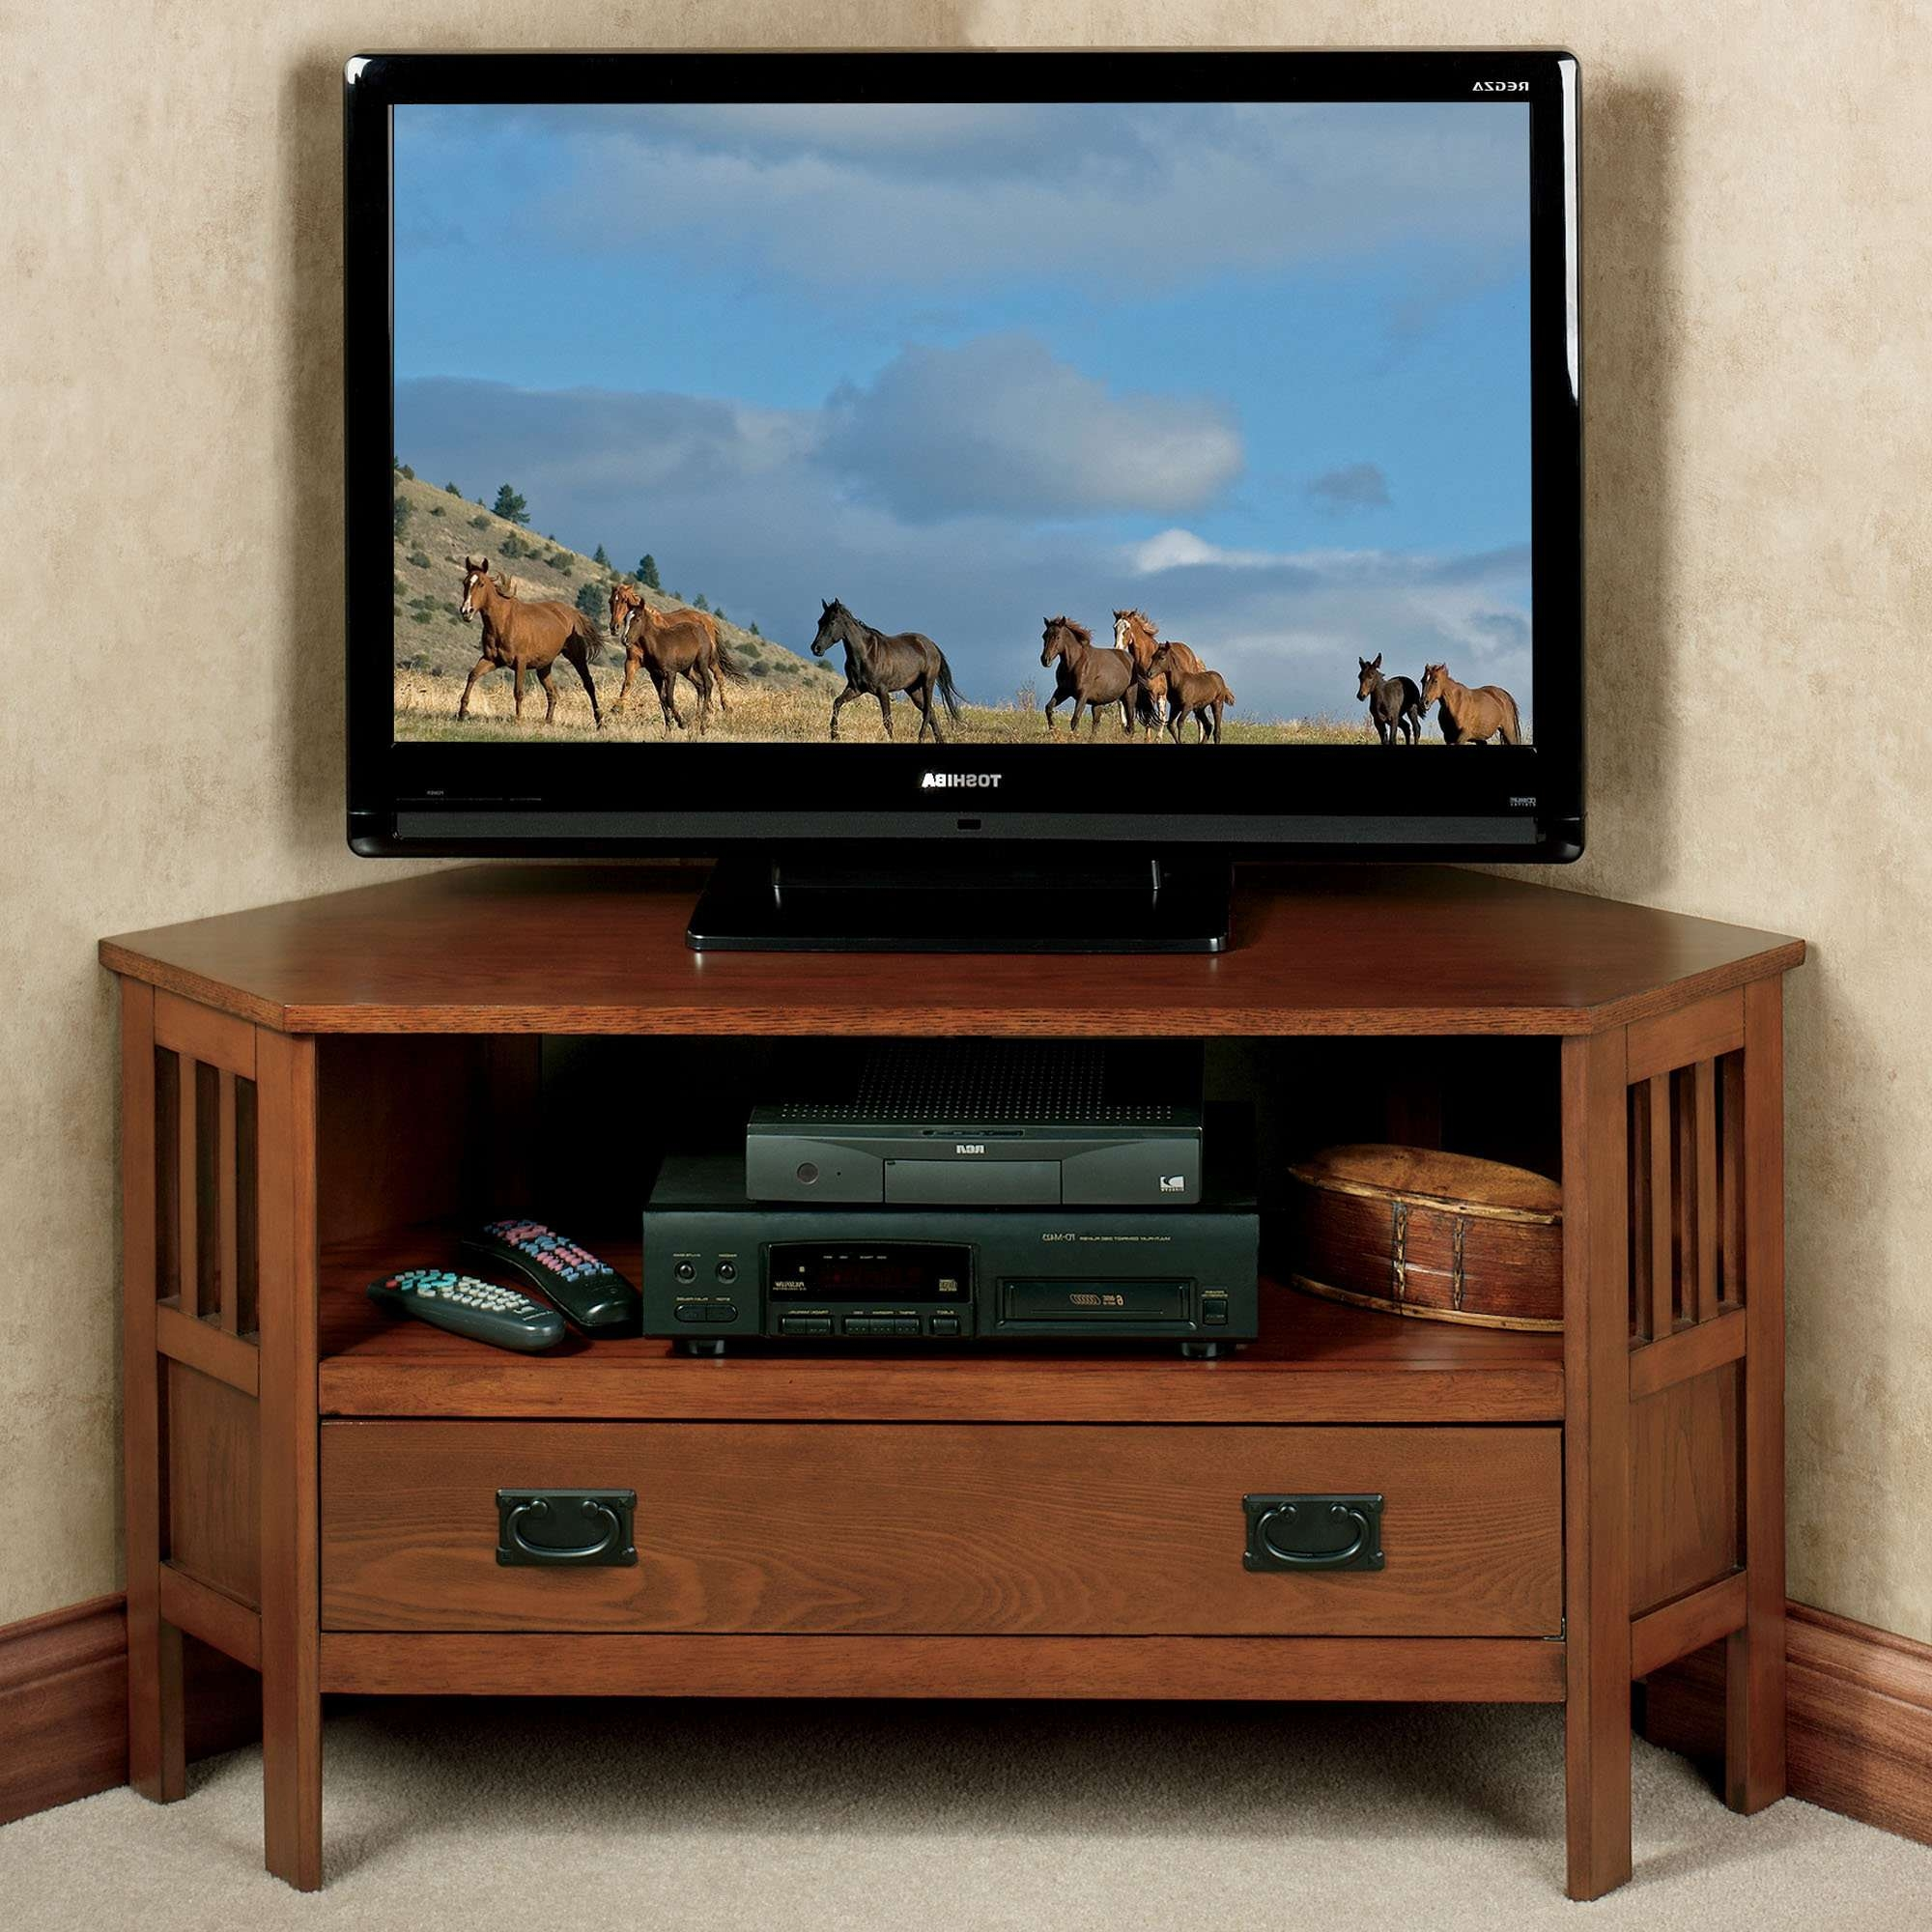 Home Decor: Alluring Wood Tv Stands For Flat Screens With Corner Inside Corner Tv Stands With Drawers (View 5 of 15)